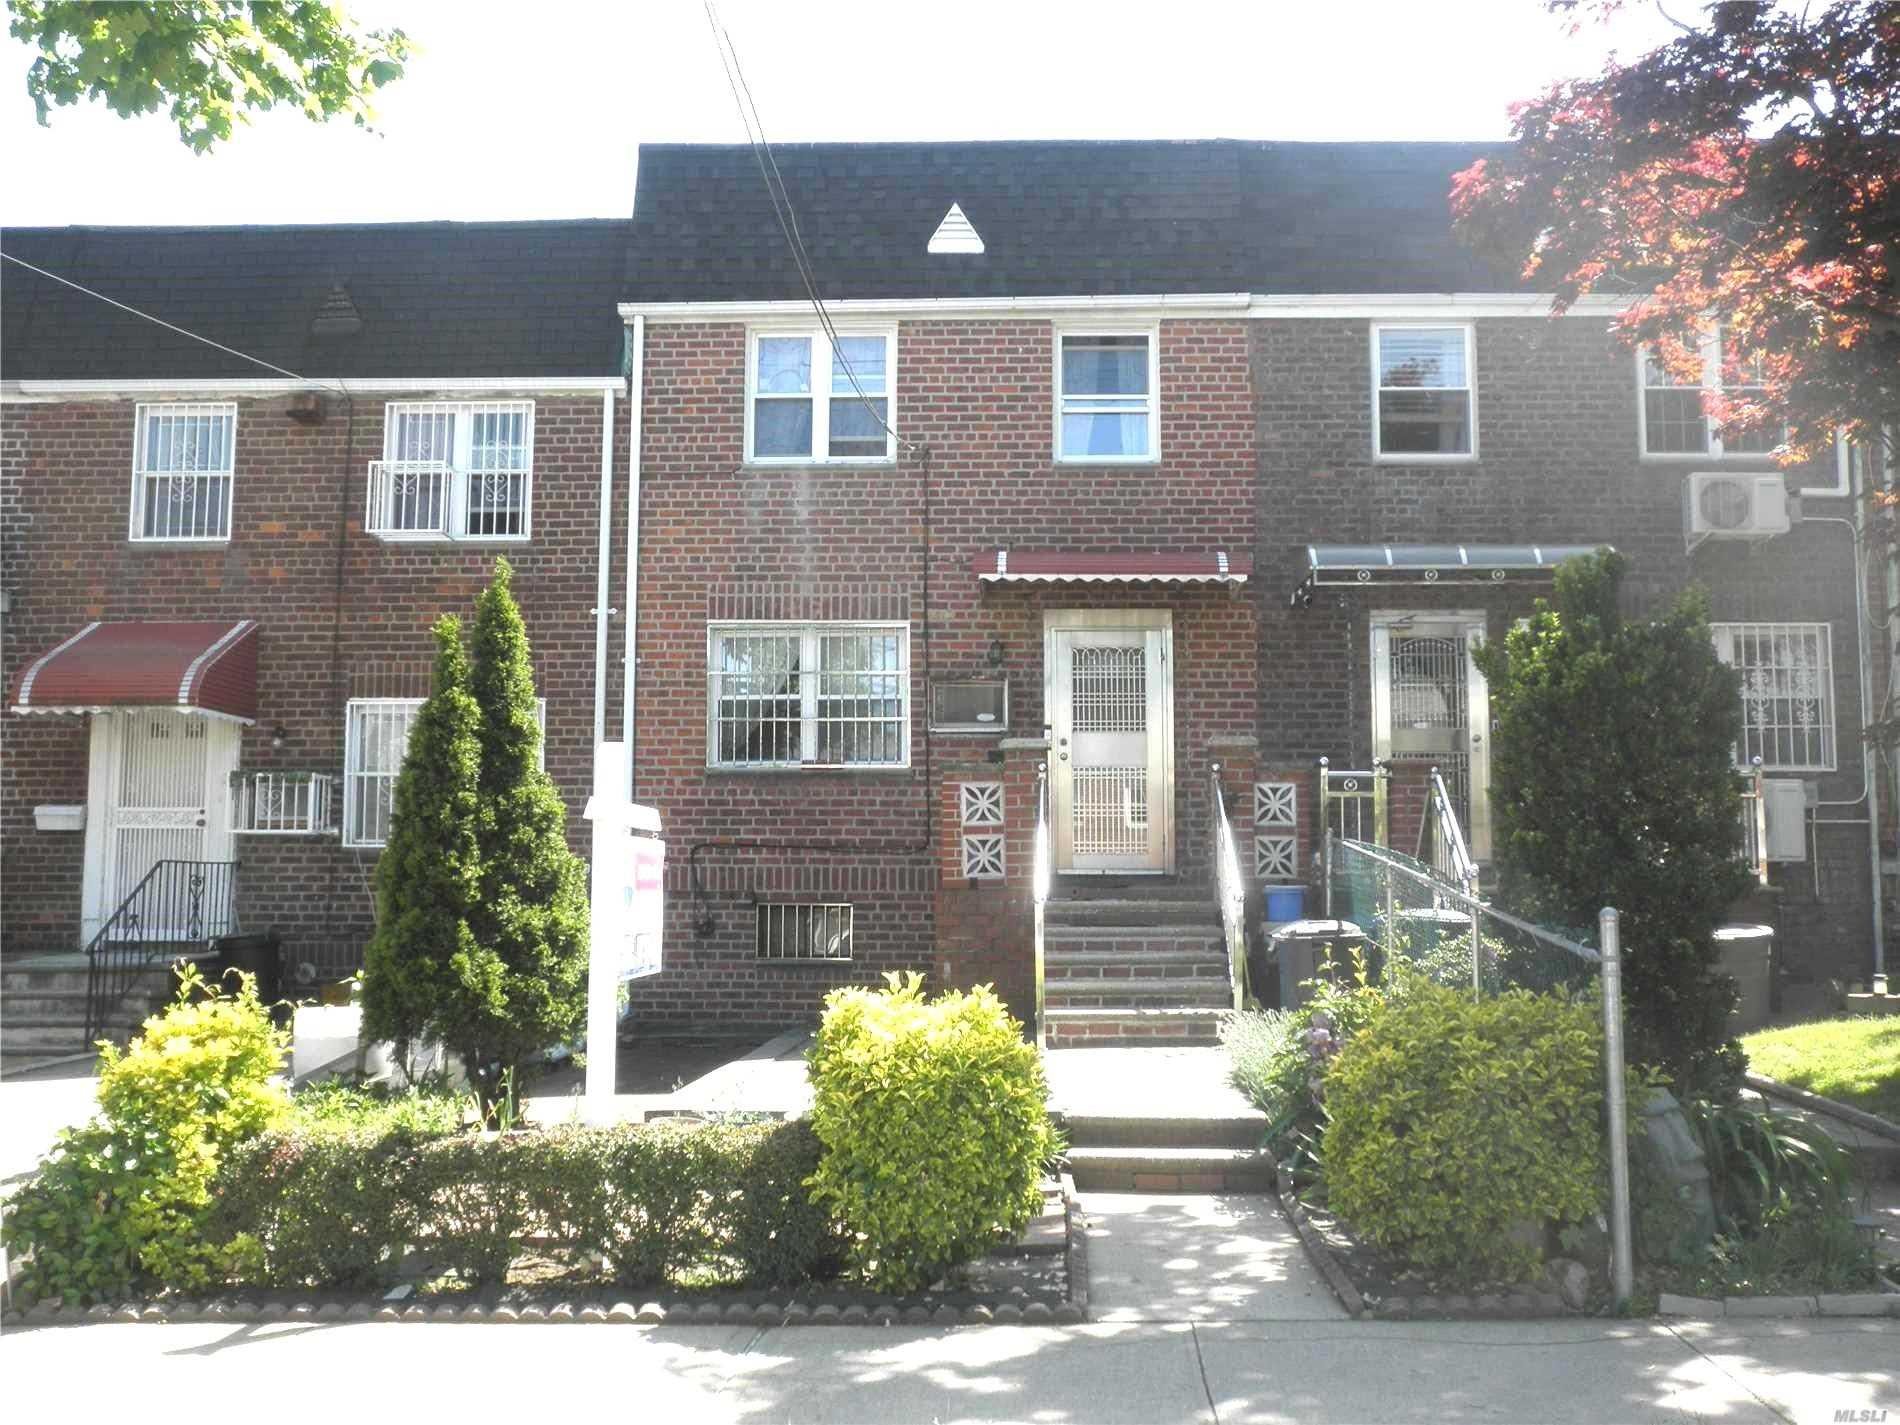 All Brick Colonial On 18X100 Lot With R4B Zoning !! Sunny Living Room, Formal Dining Room, Huge Eat-In-Kitchen, Half Bathroom On First Floor. 3 Bedrooms And Full Bath On 2nd Floor. Spacious Walk-In Basement With High Ceiling & Large Windows & Sep/Ent . 18x36 Building Size!! Gas Heating. 1 Car Garage. Large Backyard. Near Transportation, Shops And Schools.